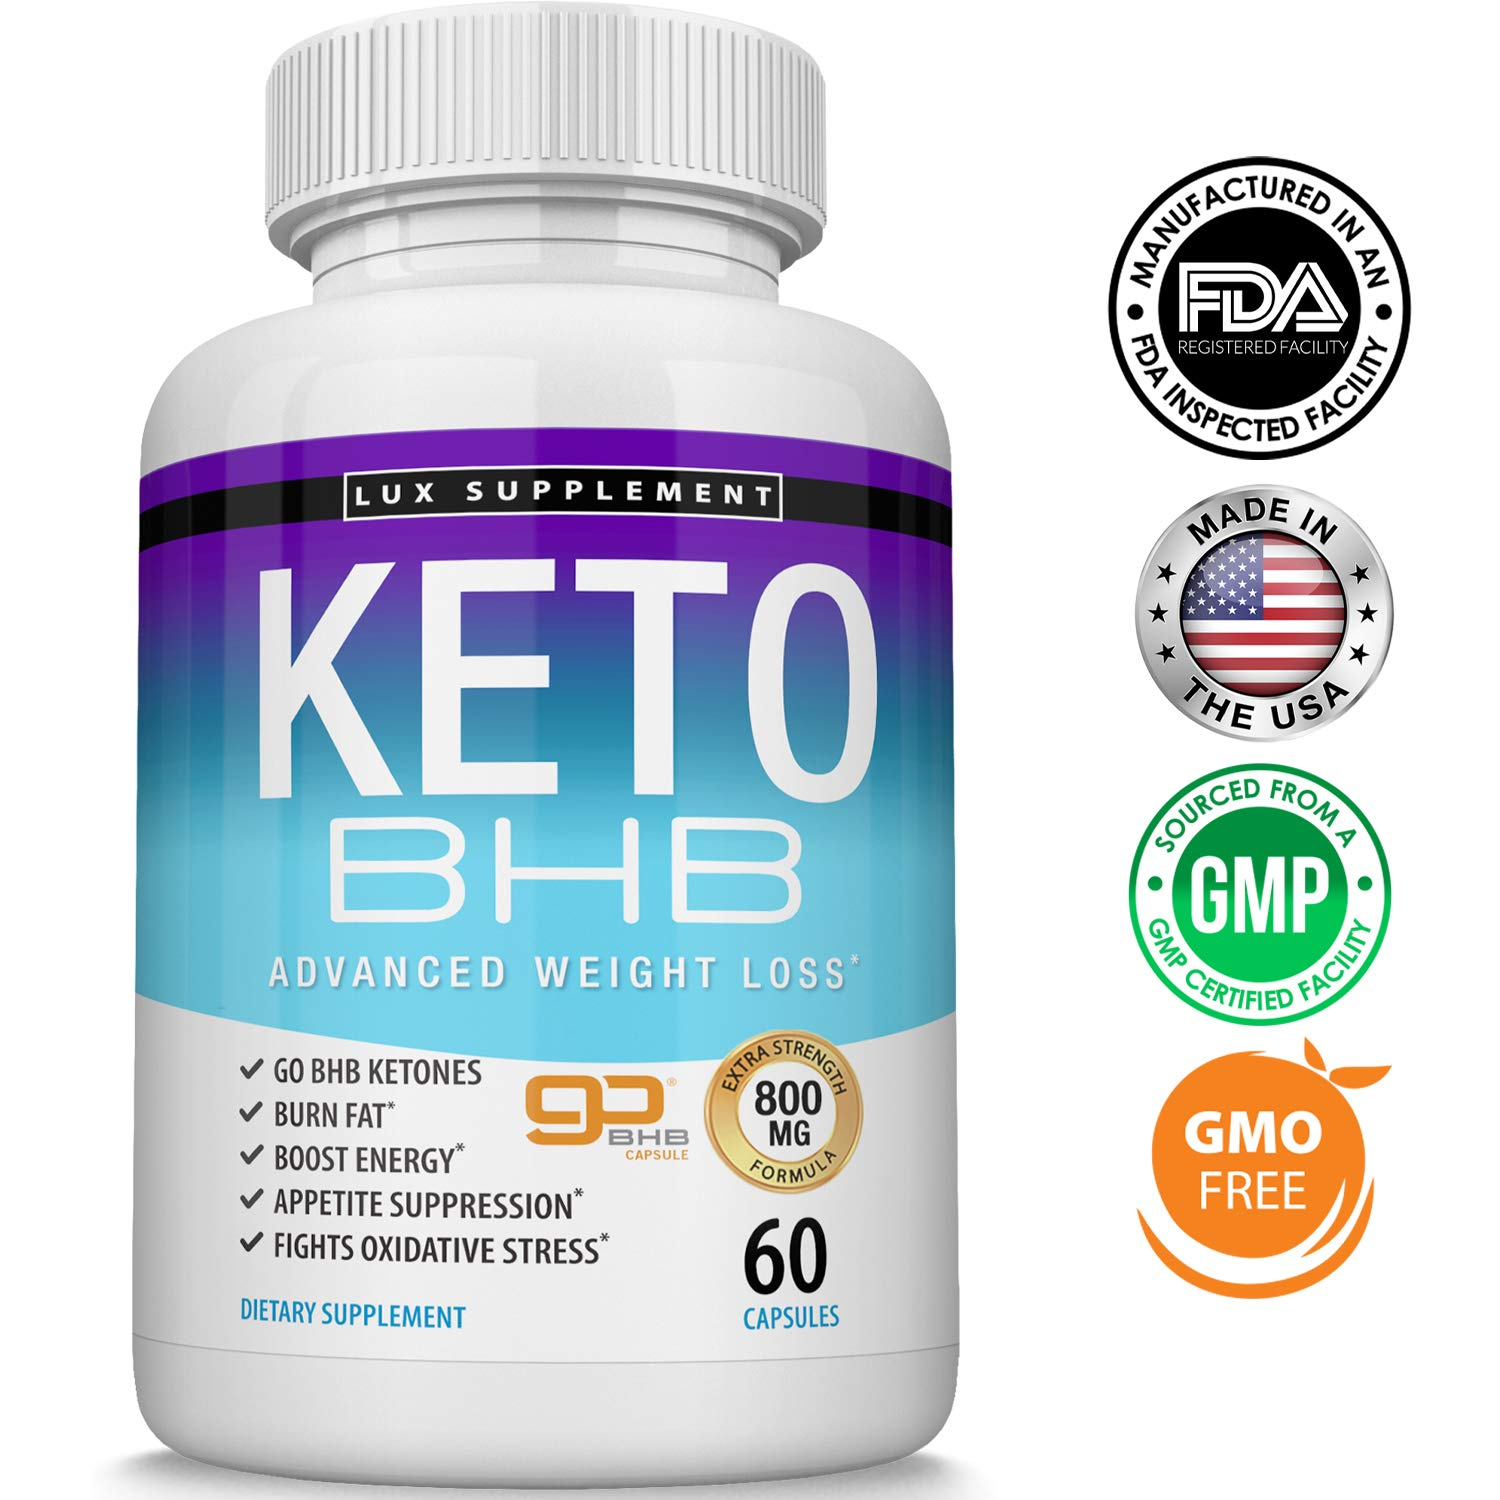 Keto Pills Advanced Weight Loss BHB Salt - Natural Ketosis Fat Burner Using Ketone & Ketogenic Diet, Boost Energy While Burning Fat, Fast & Effective Perfect for Men Women, 60 Capsules, Lux Supplement by Lux Supplement (Image #1)